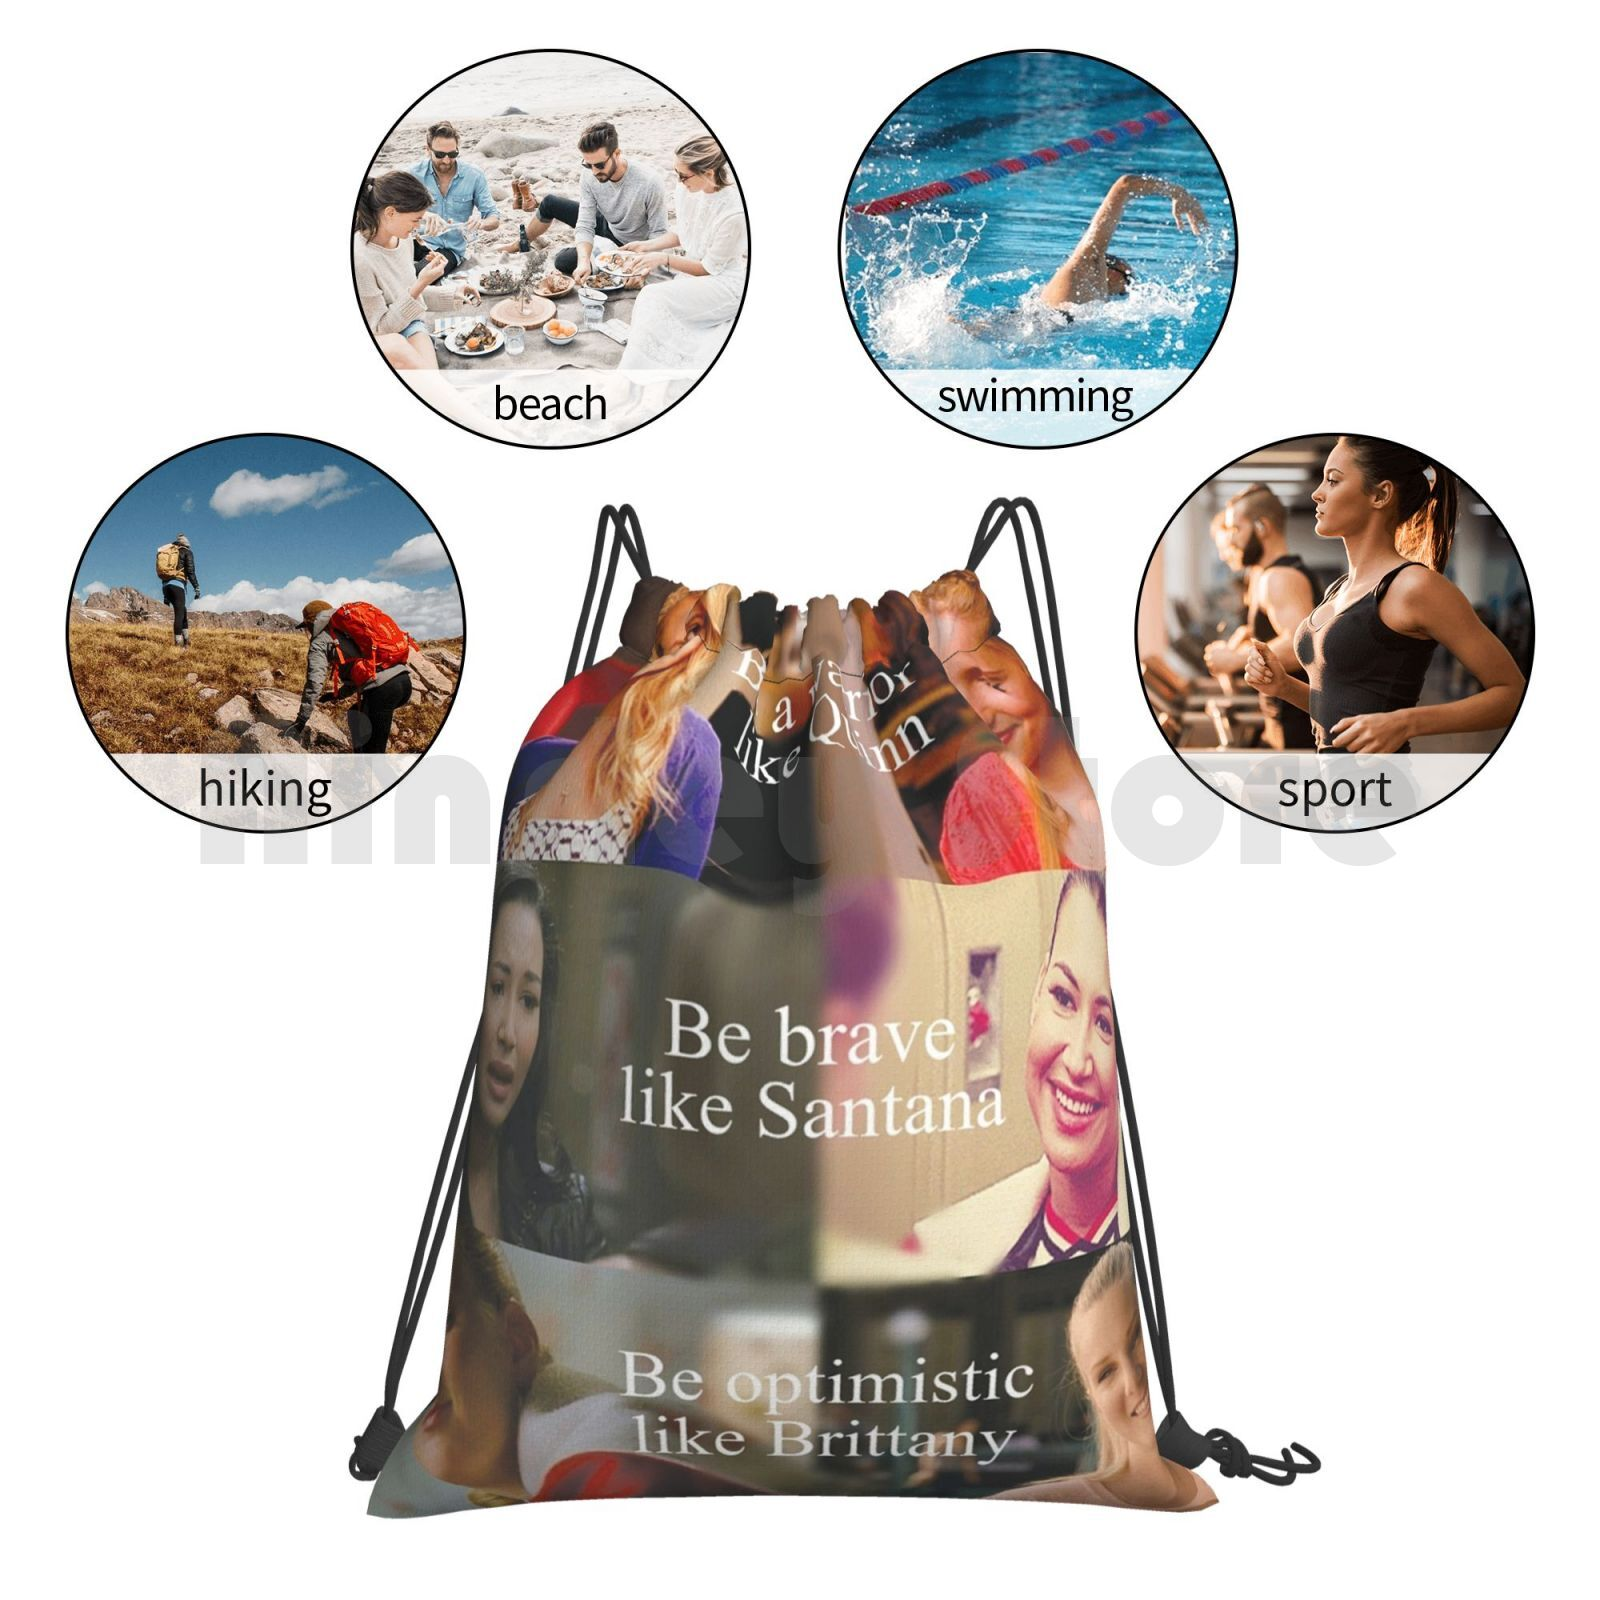 Glee The Unholy Backpack Drawstring Bags Gym Bag Waterproof Quinn Fabray Santana Lopez Glee Brittany Pierce Brittany S